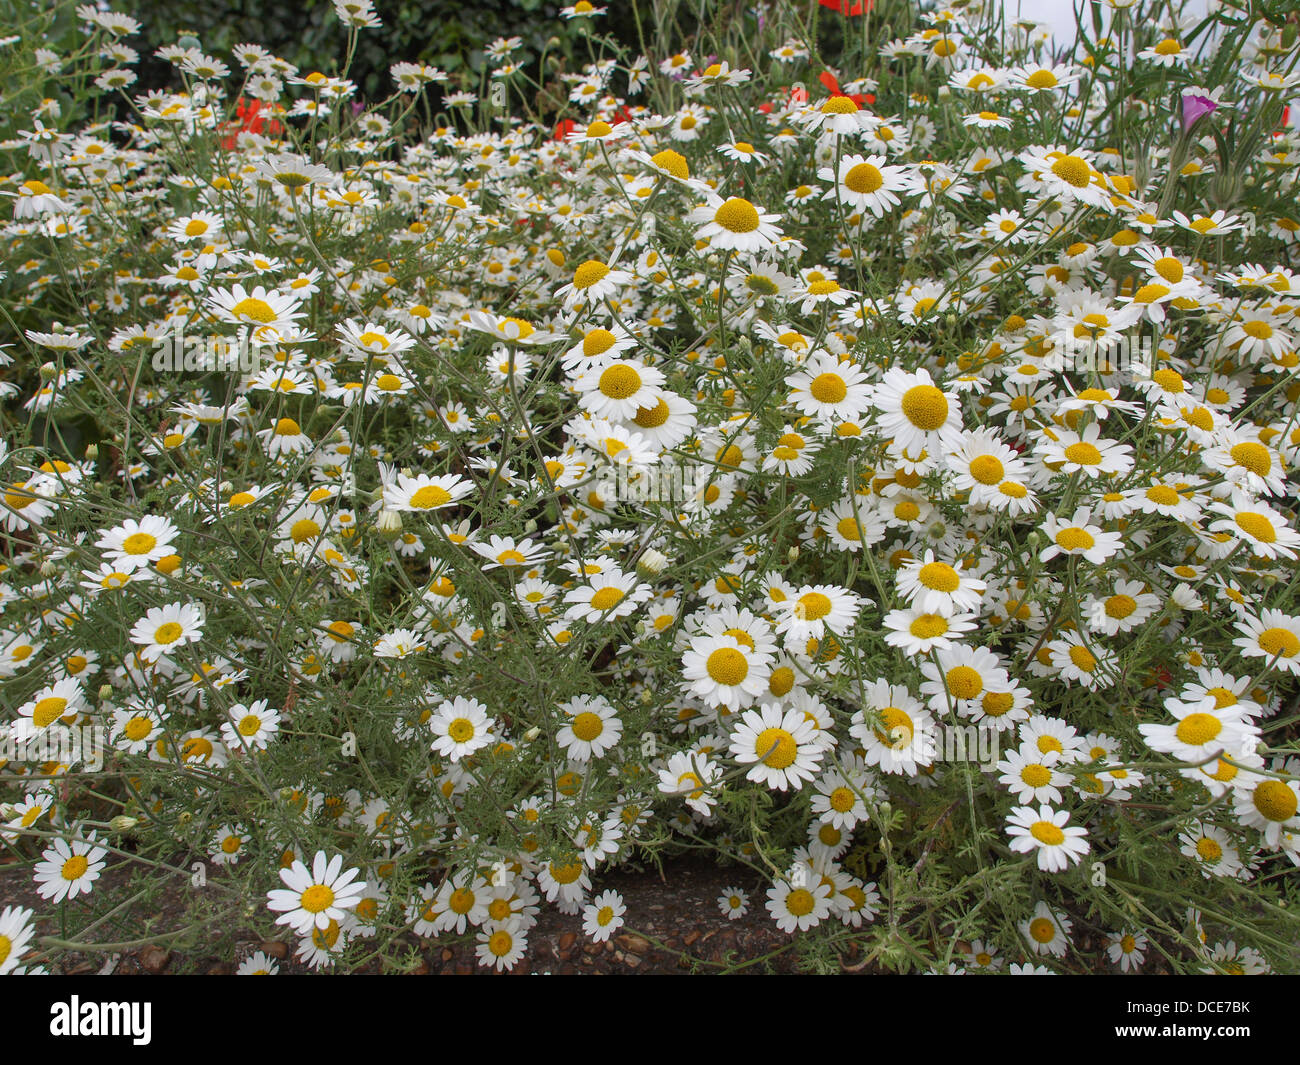 Common daisy Bellis Perennis Plantae Angiosperms Eudicots Asterids Asterales Asteraceae - Stock Image